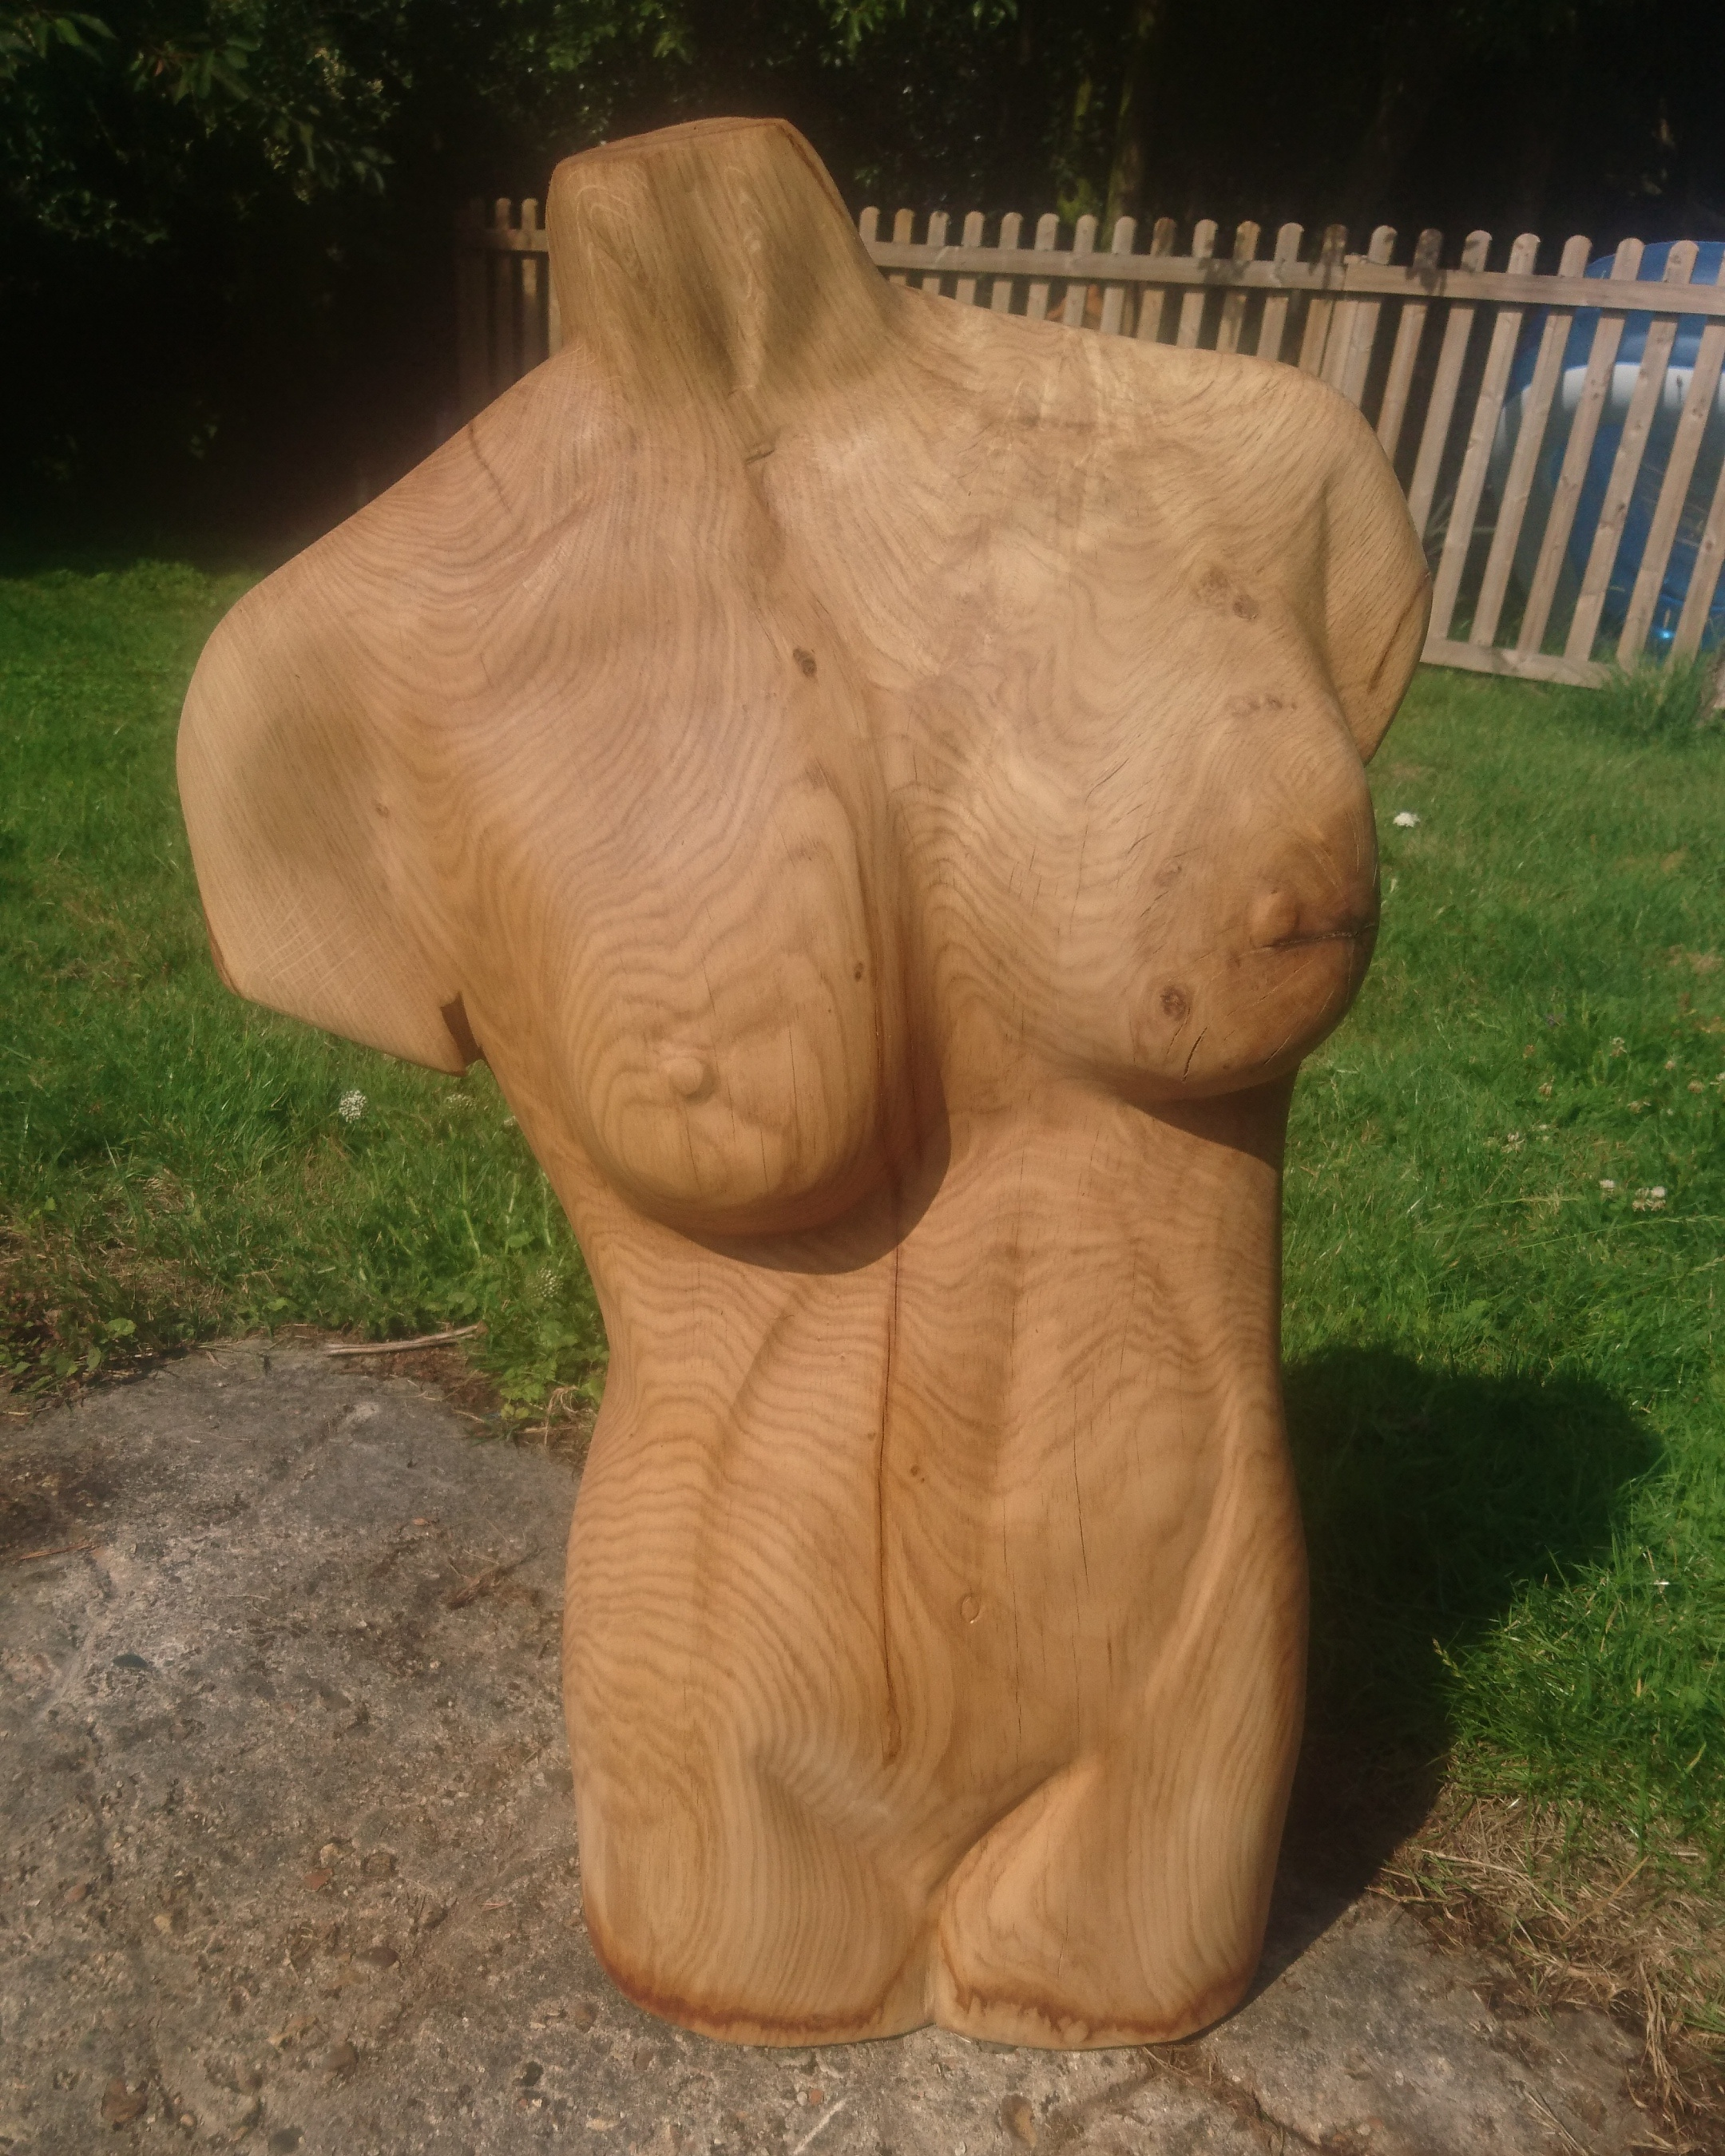 Sculpture carving bespoke furniture wood woodcarving commissions